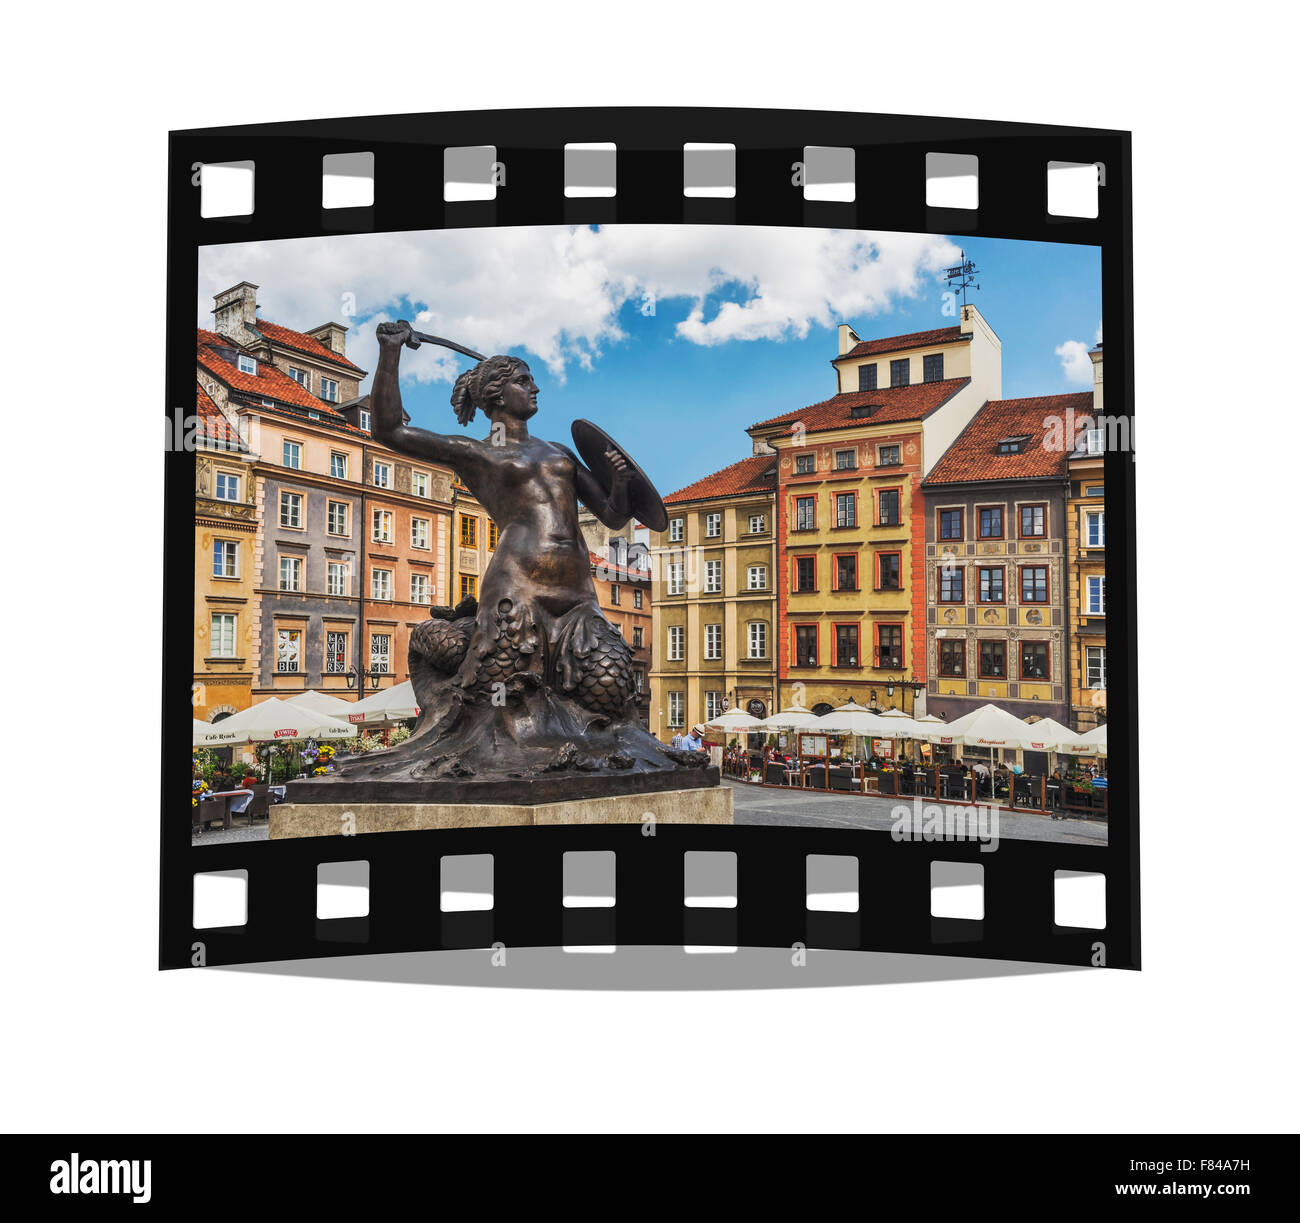 The Mermaid of Warsaw  is located on the old town market square (Rynek Starego Miasta), Warsaw, Masovian, Poland, - Stock Image